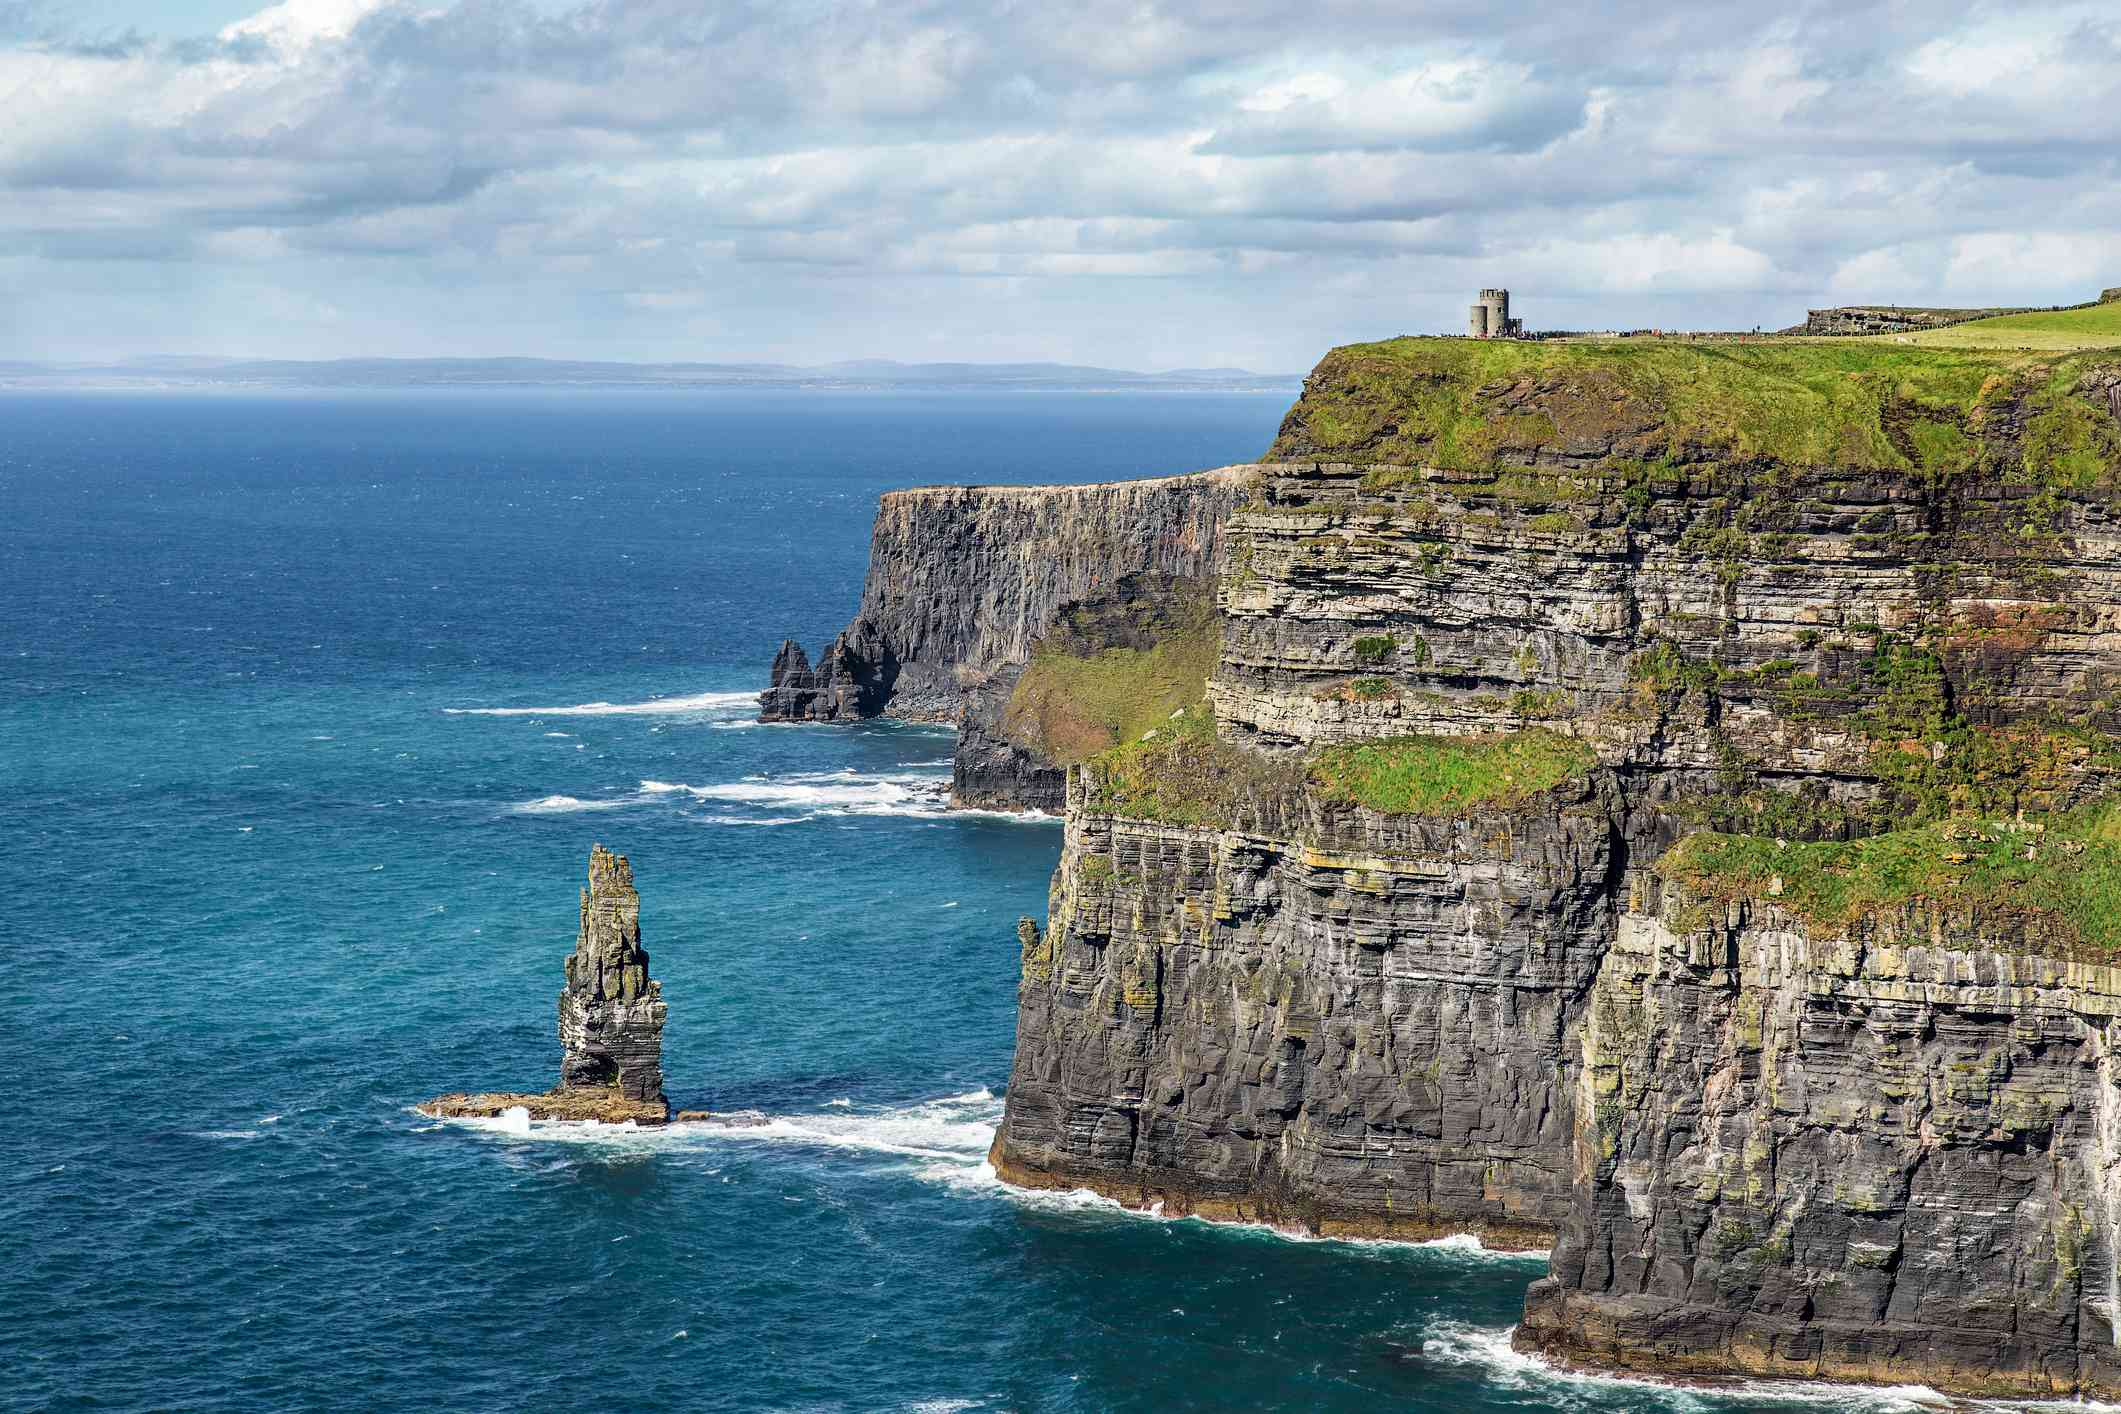 a small tower on the edge of the green and rocky cliffs of Moher overlooking the blue sea